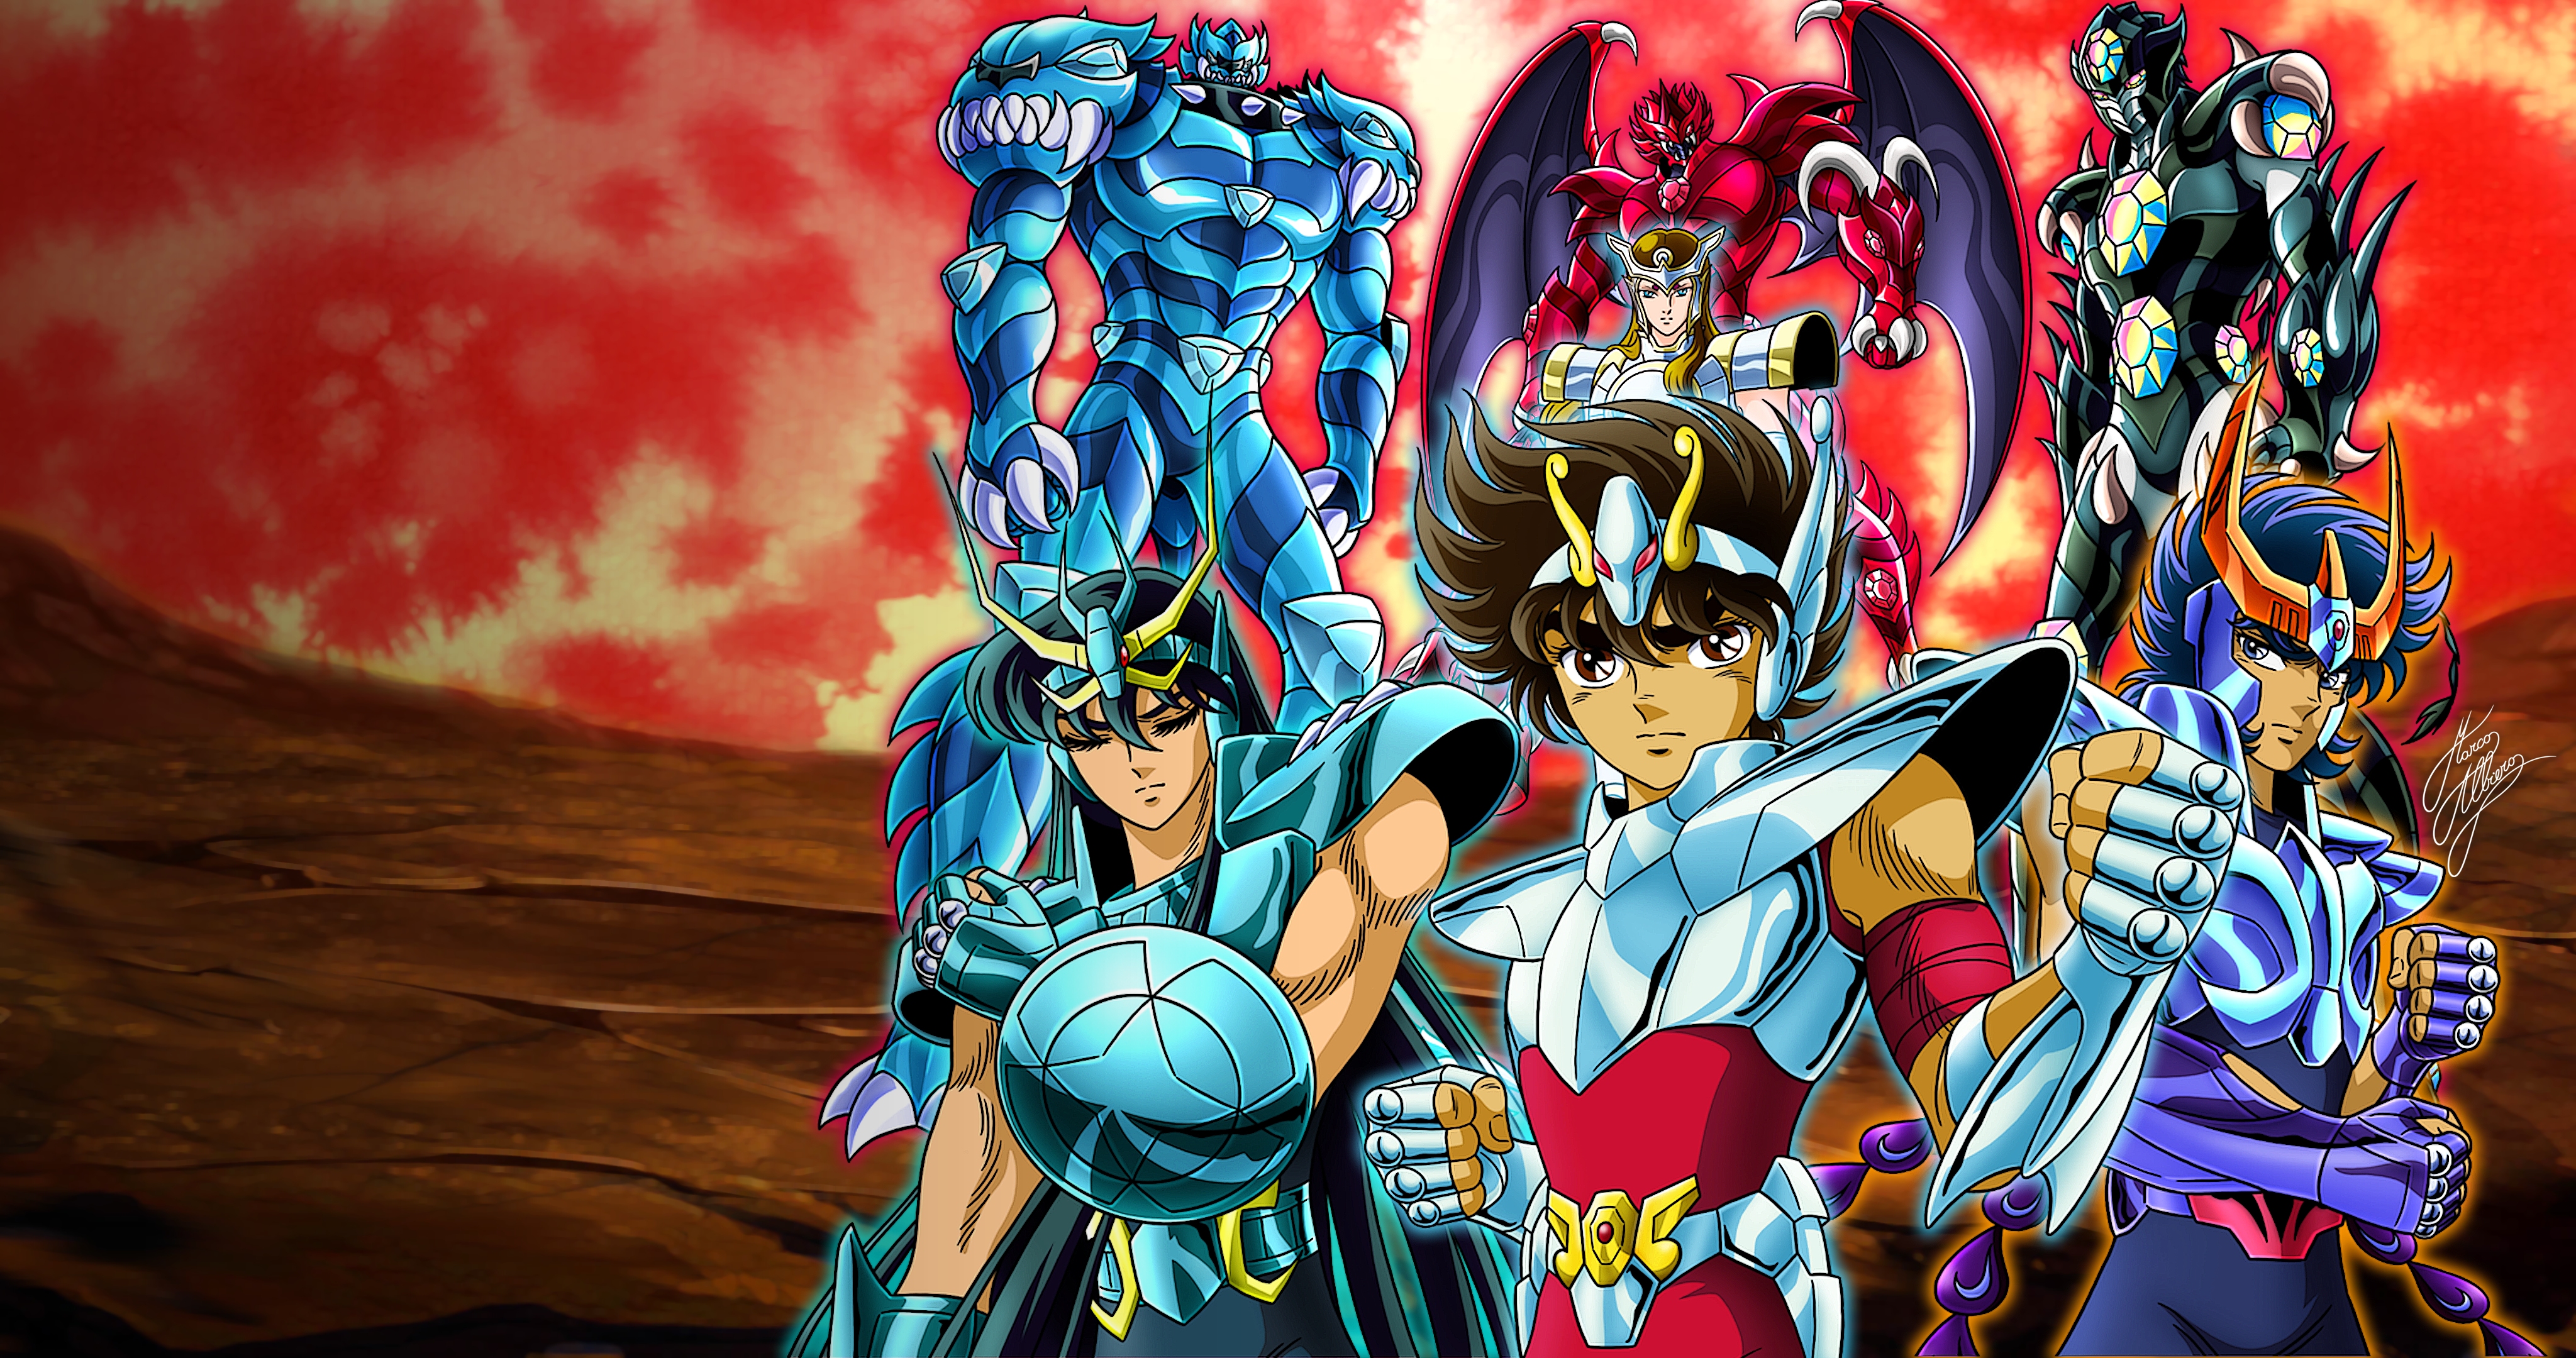 Saint Seiya Gigantomachia 4k Wallpaper 4k Ultra Papel De Parede